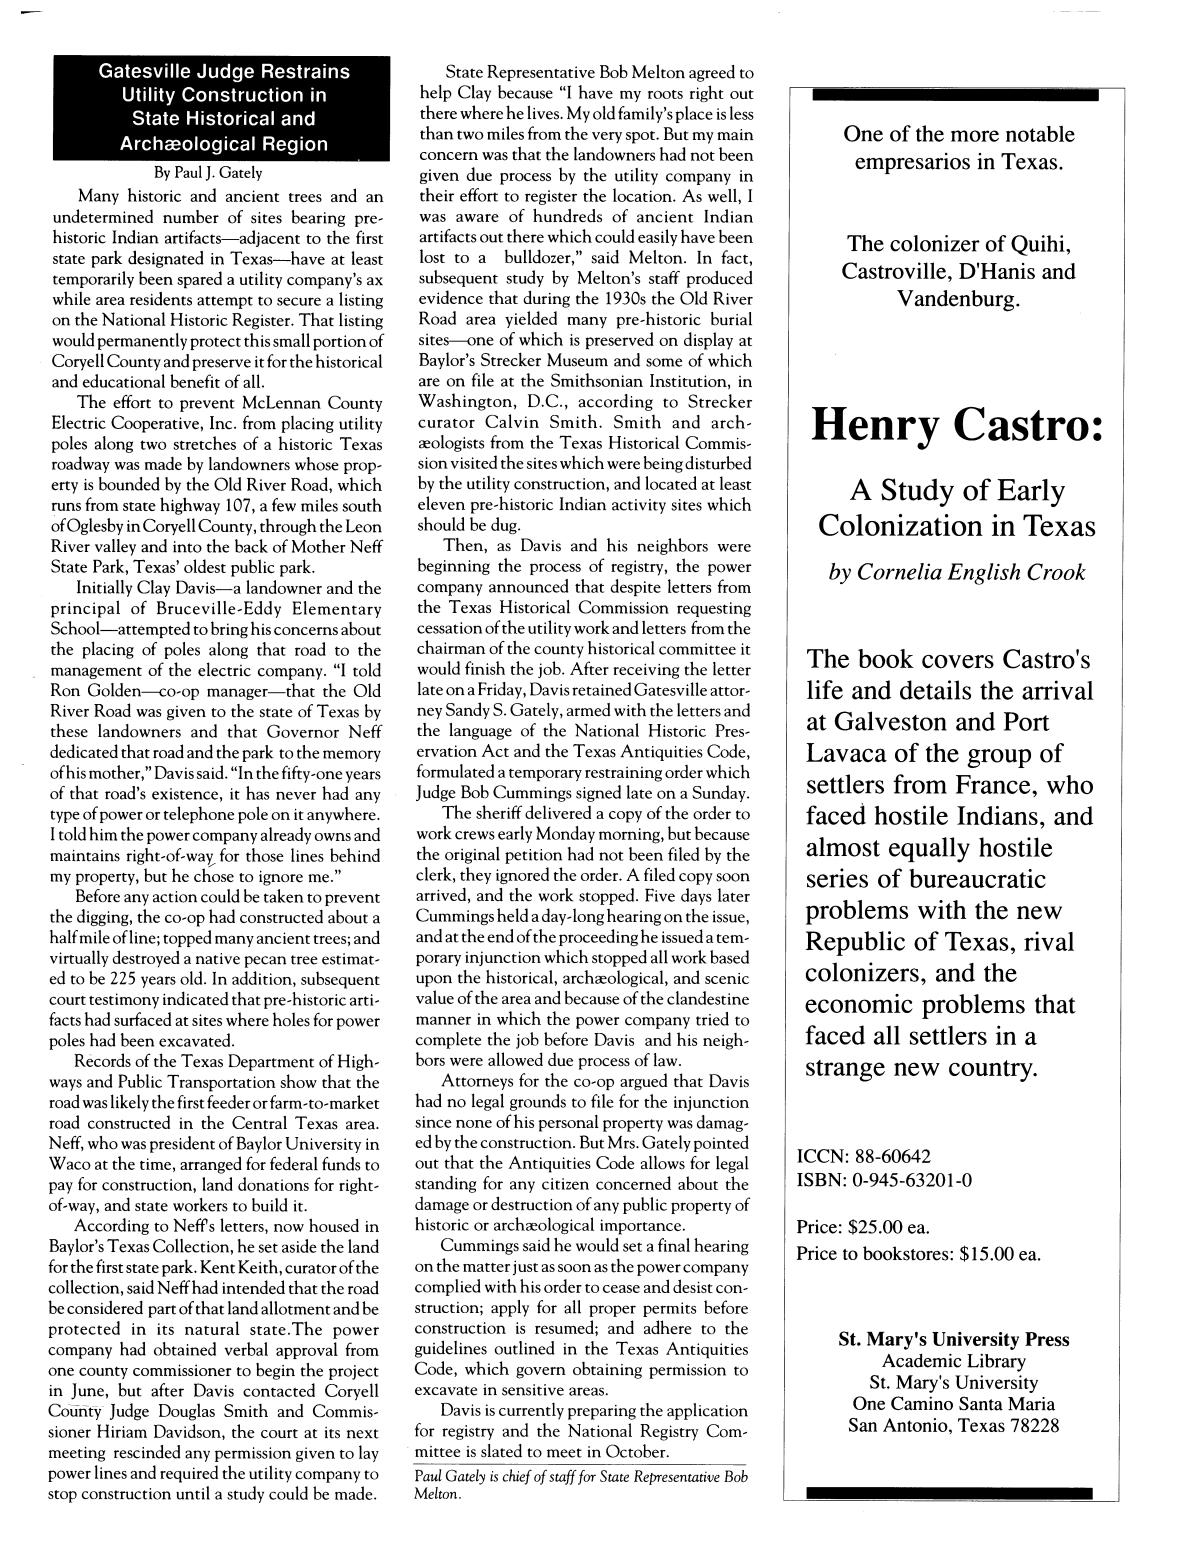 Heritage, Volume 8, Number 4, Fall 1990                                                                                                      29